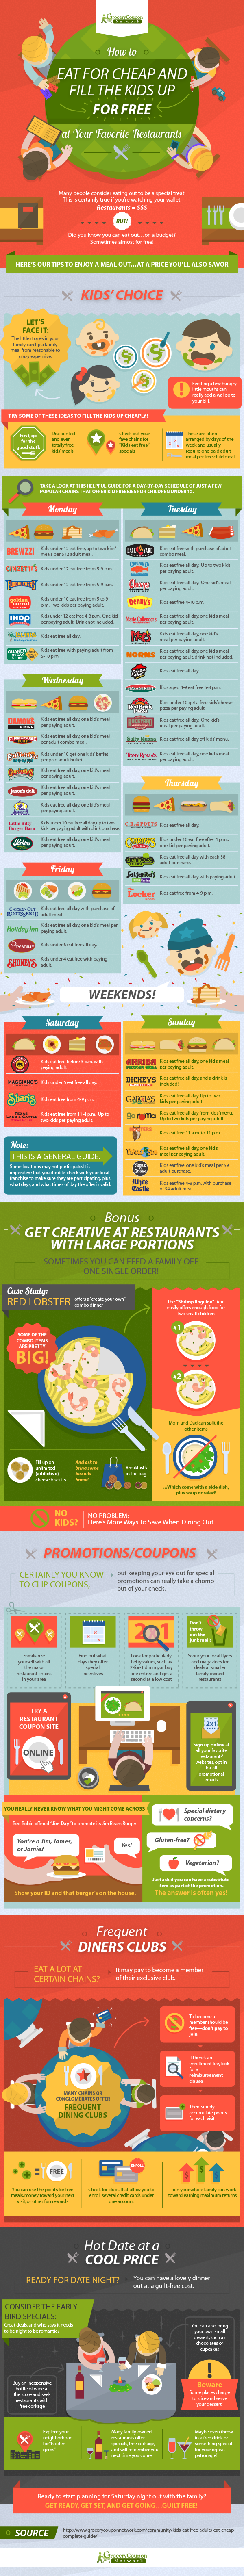 This Infographic Tells You When Kids Eat Free at Chain Restaurants